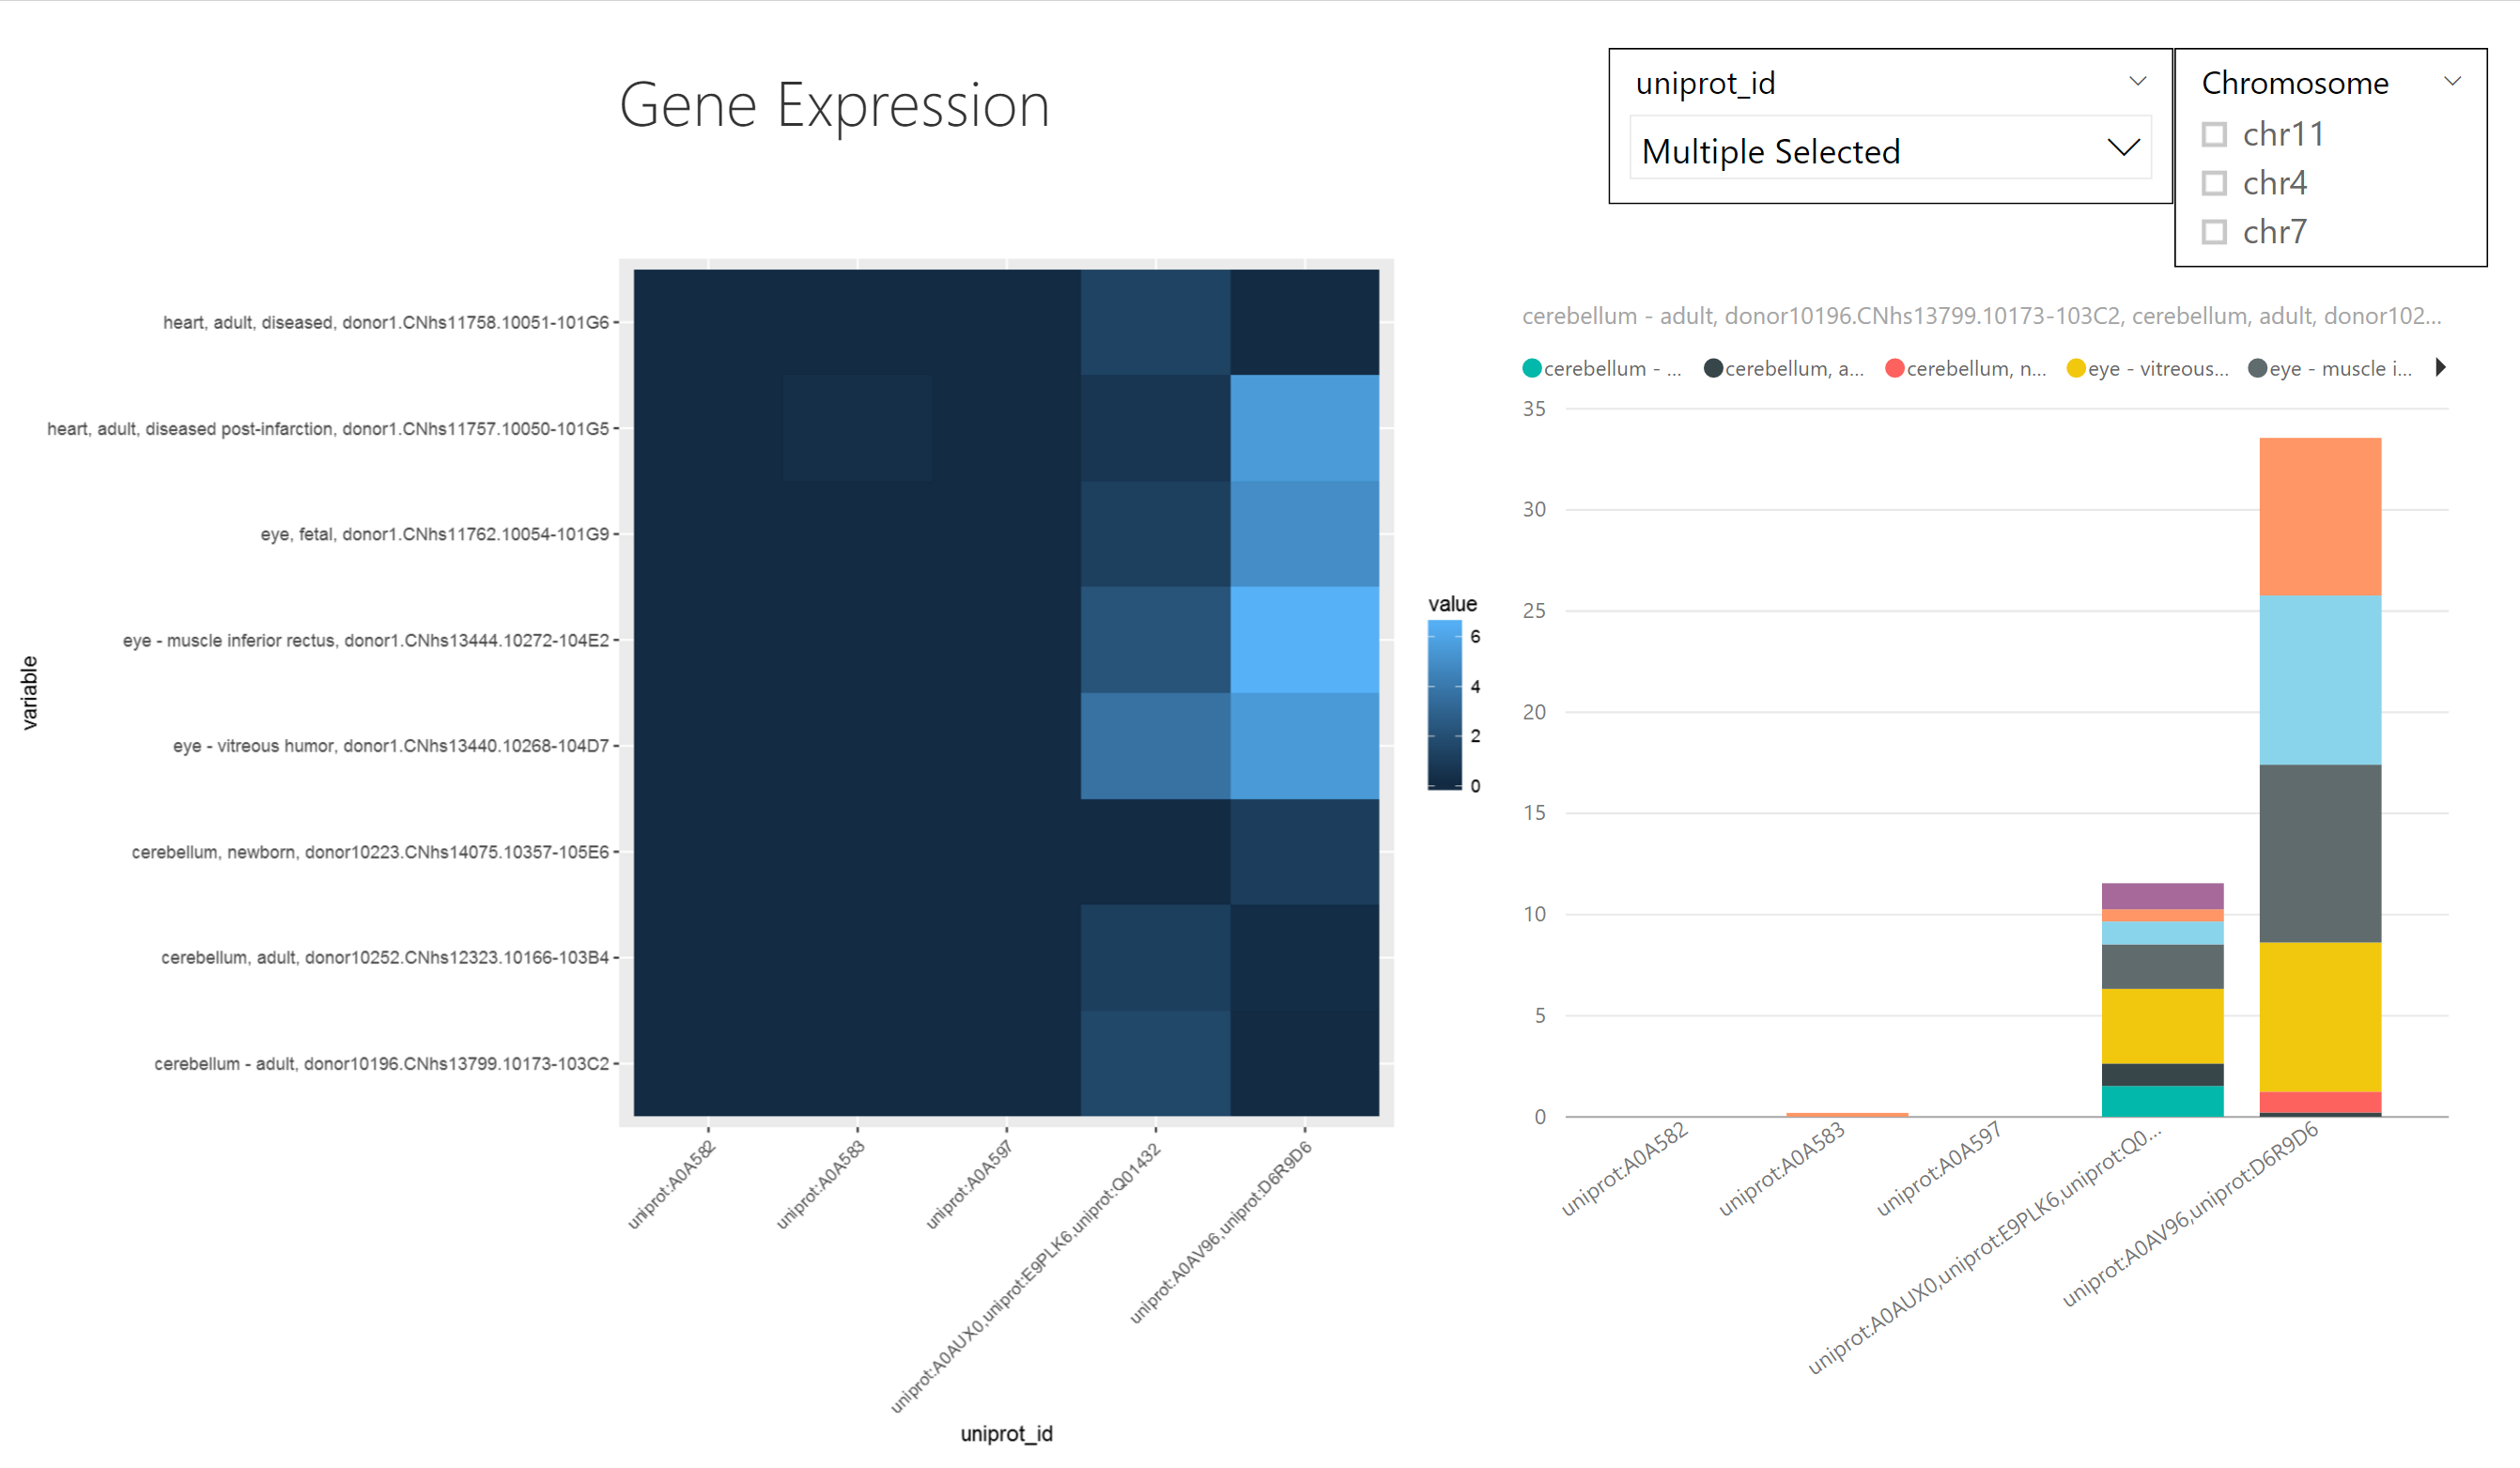 GeneExpression.png